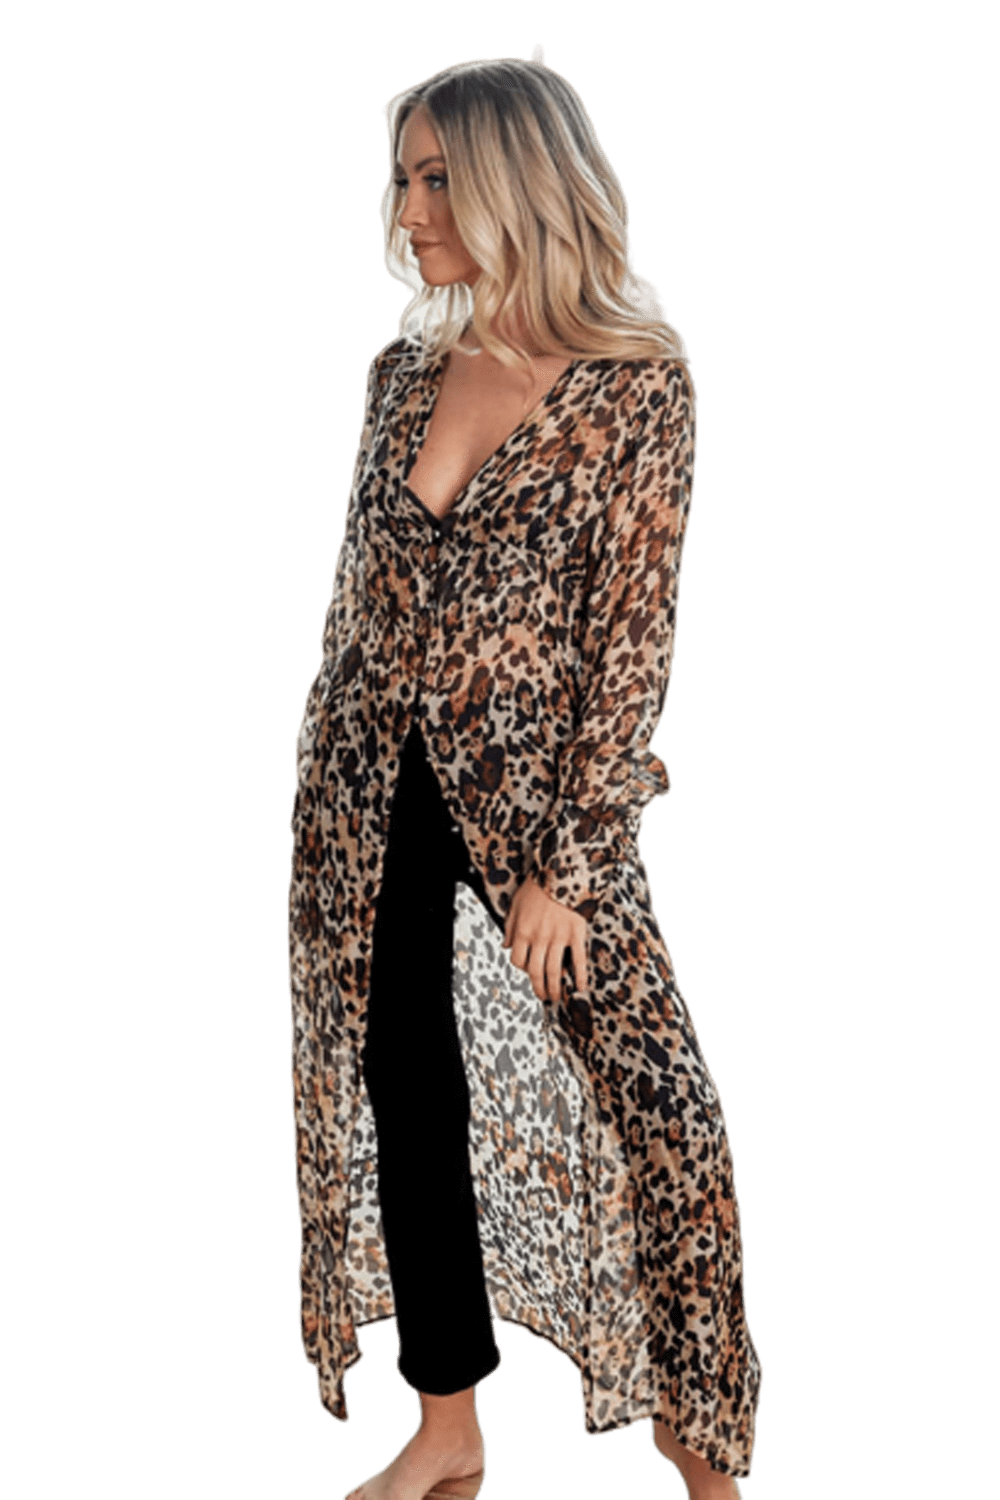 shop-sofia ANDY LEOPARD PRINT Sofia Collections Italian Silk Linen Satin